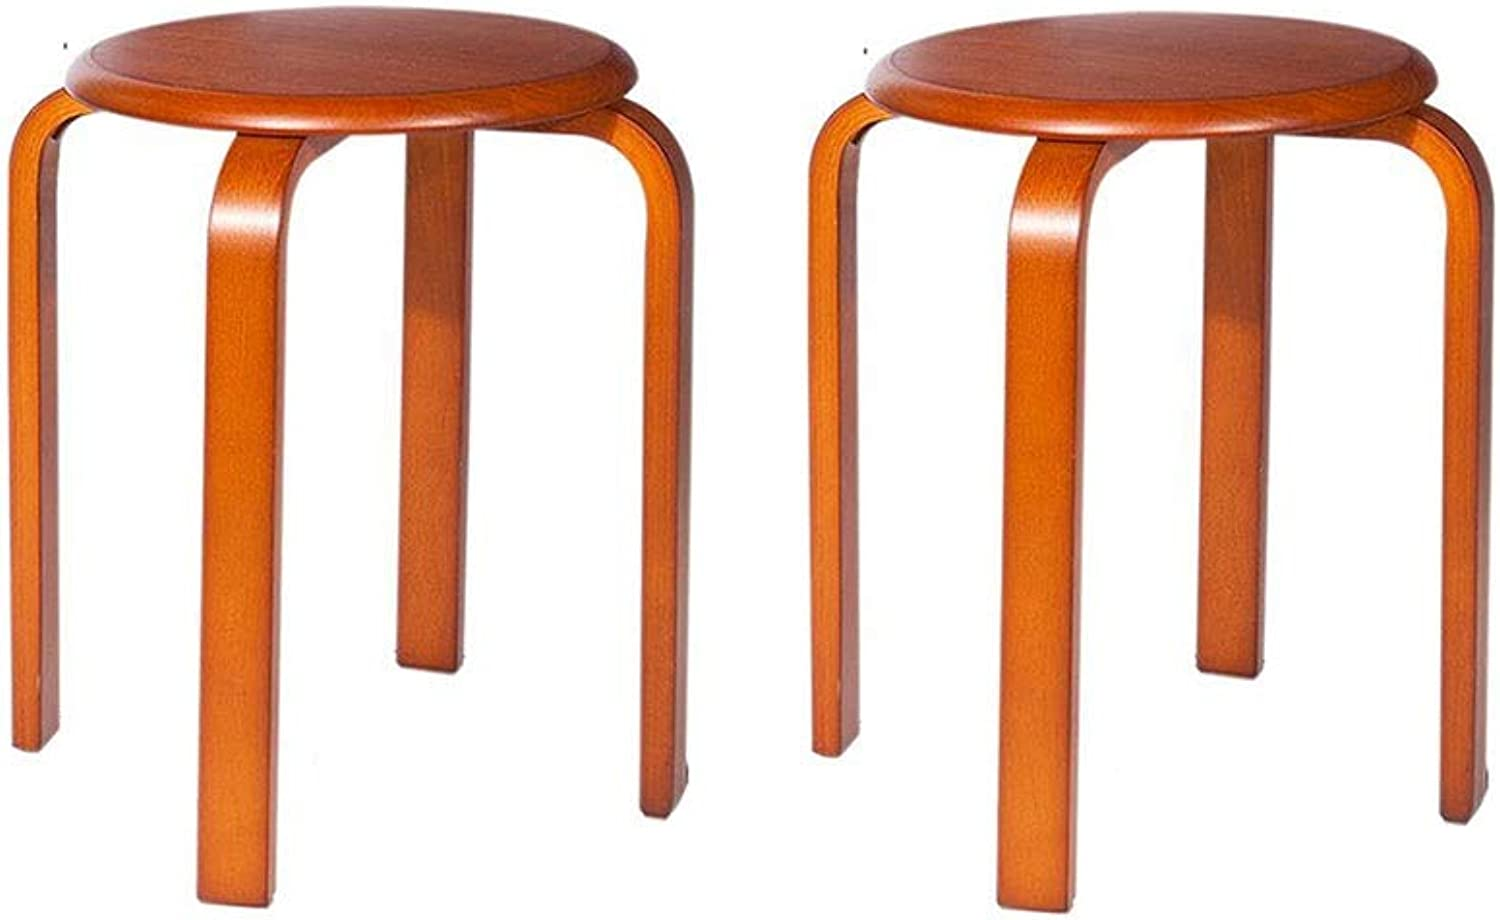 QIQI-LIFE Set of 2 Stacking Stool,Rubberwood Round Stool,Dining Table Stool Fashion Modern Home Furniture (color   Honey color)